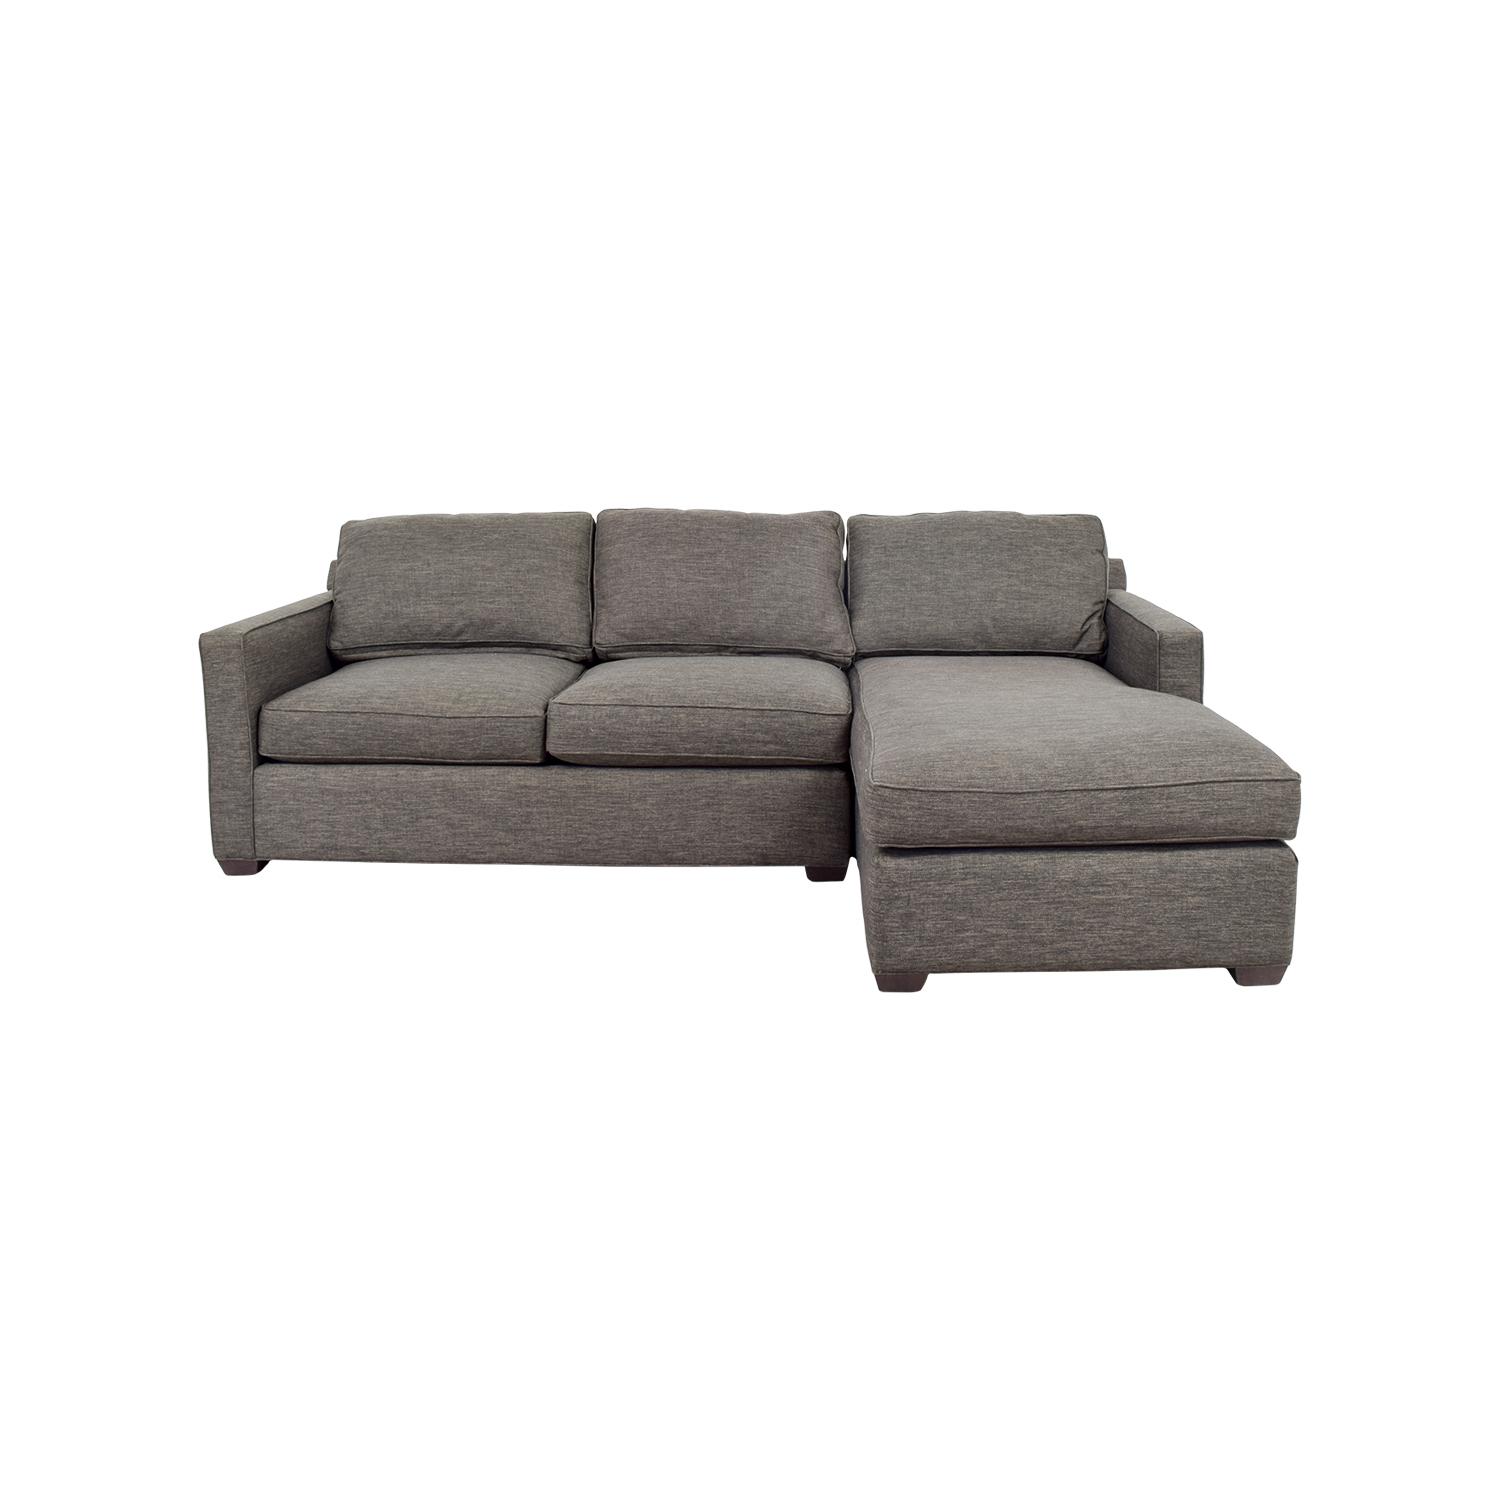 buy Crate & Barrel Davis Grey Chaise Sectional Crate and Barrel